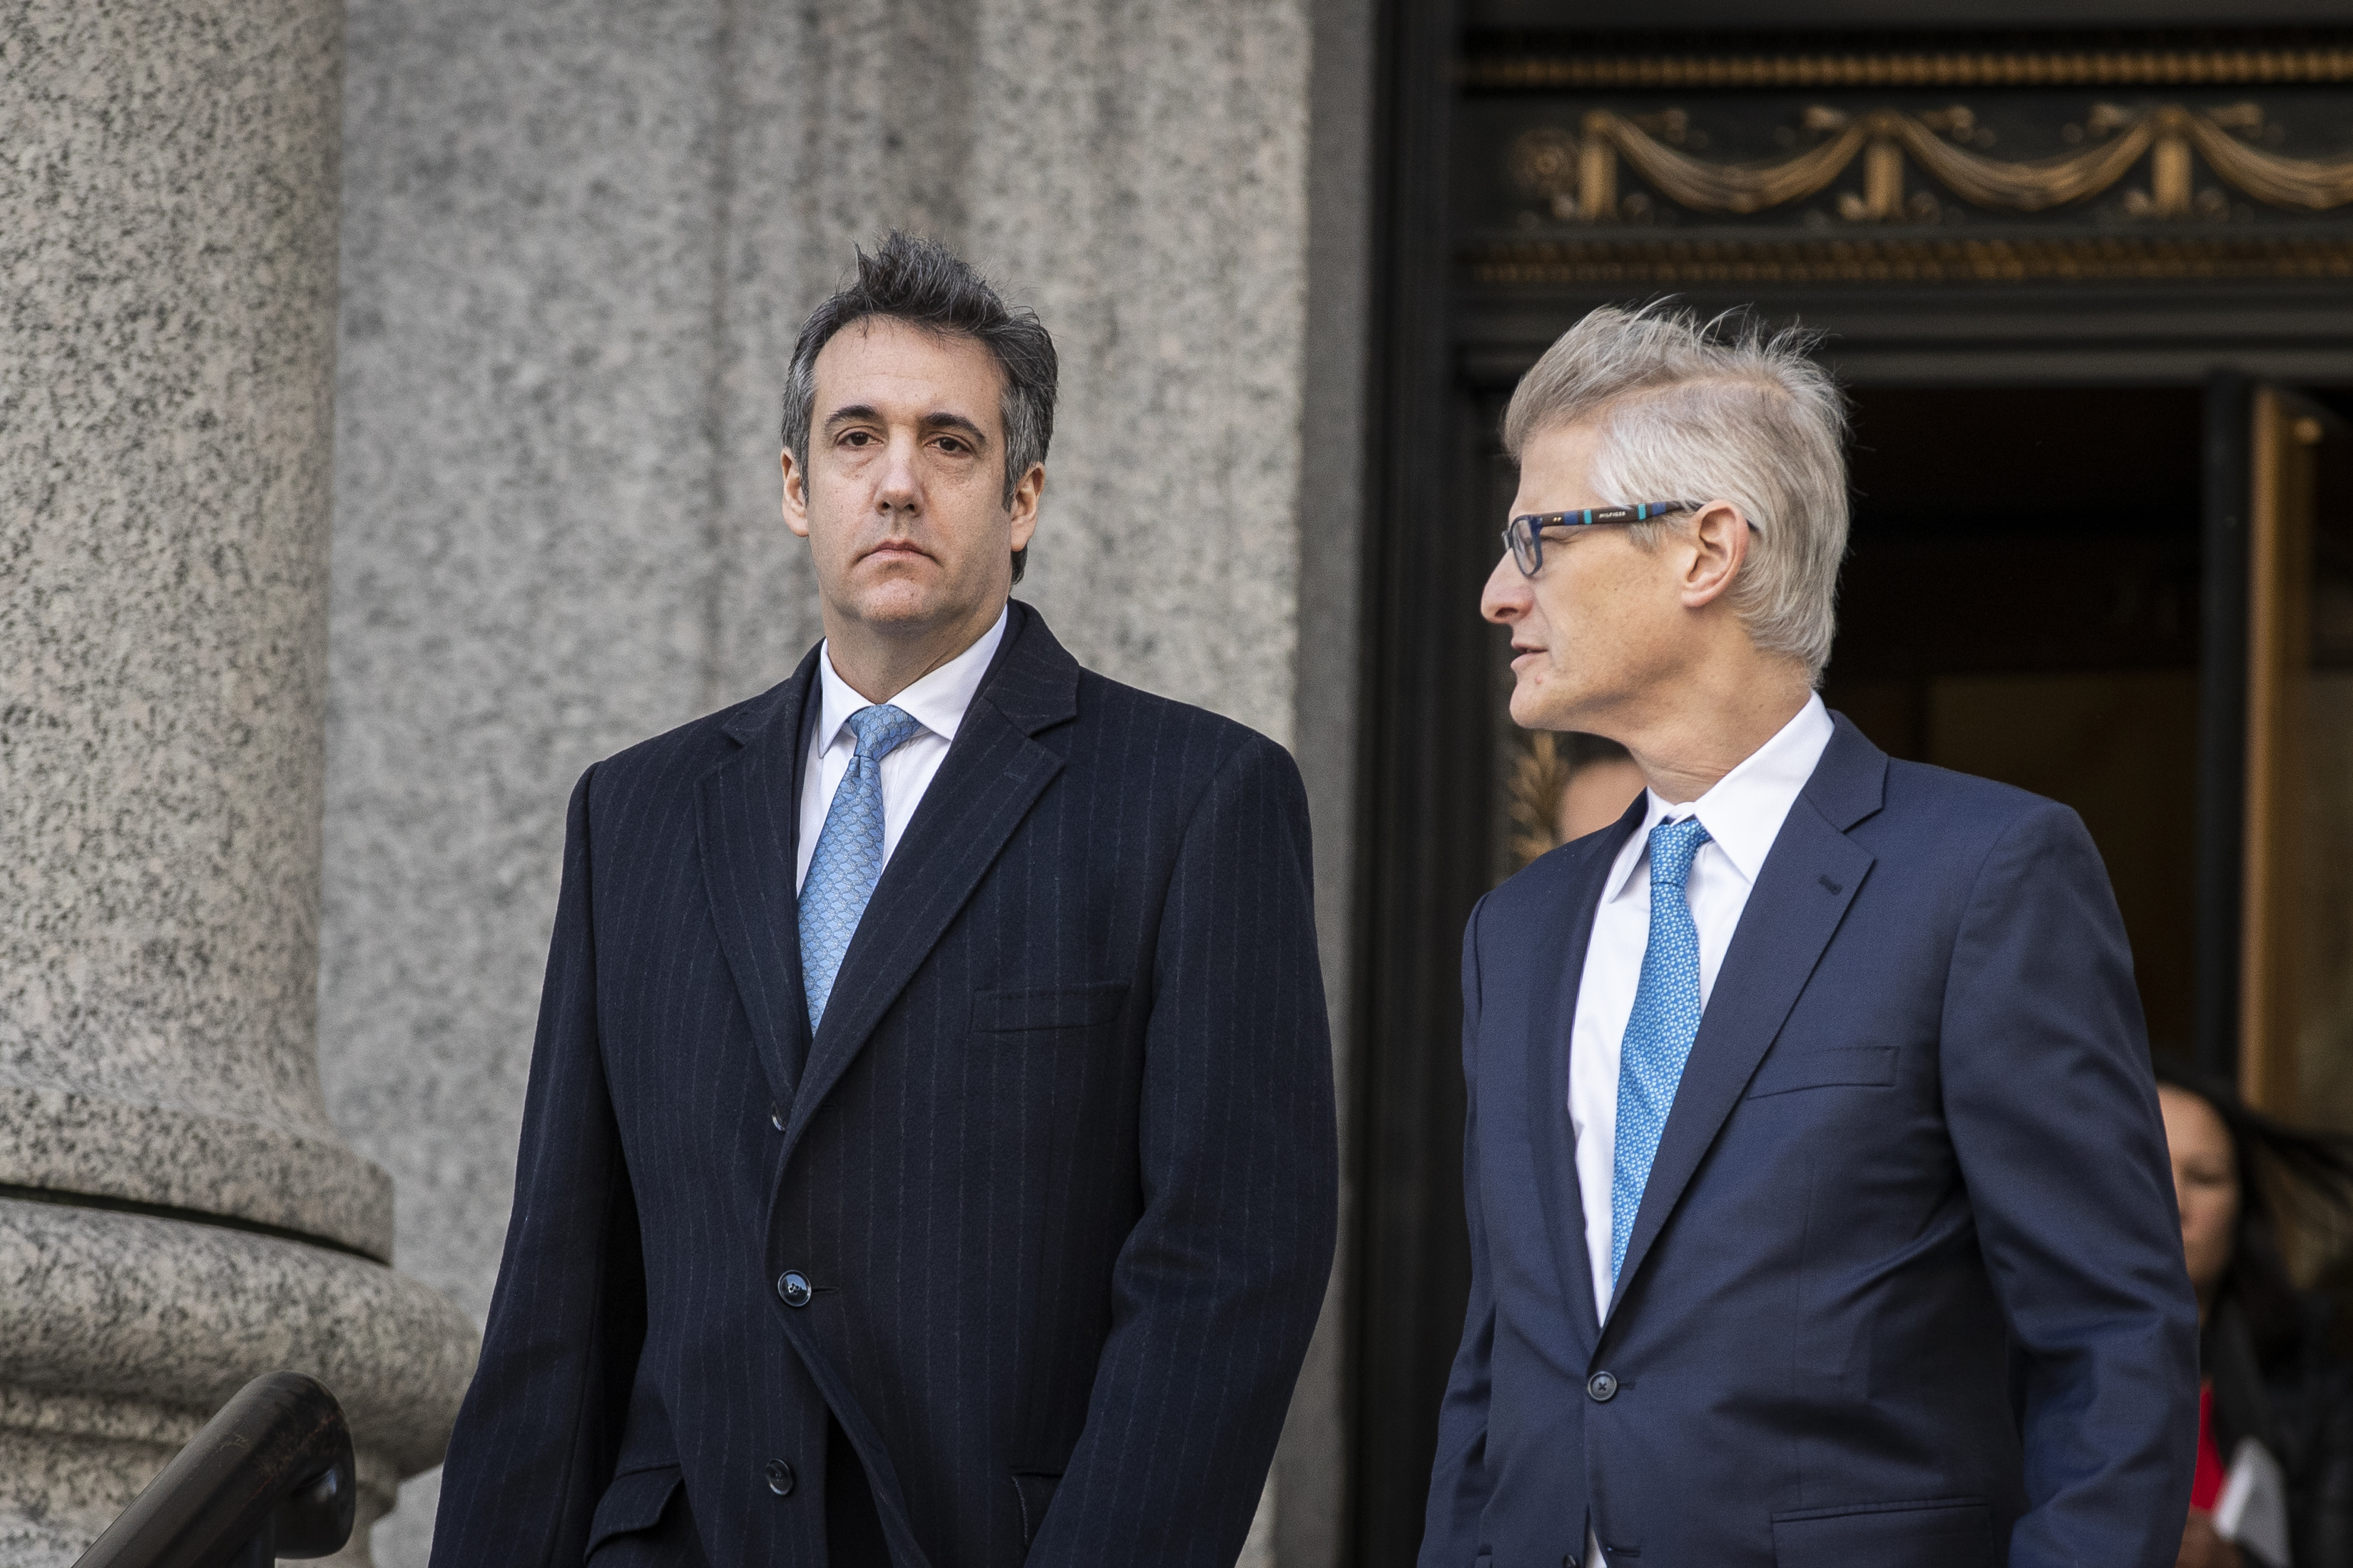 NEW YORK, NY - NOVEMBER 29: Michael Cohen, former personal attorney to President Donald Trump, exits federal court, November 29, 2018 in New York City. At the court hearing, Cohen pleaded making false statements to Congress about a Moscow real estate project Trump pursued during the months he was running for president. (Photo by Drew Angerer/Getty Images)